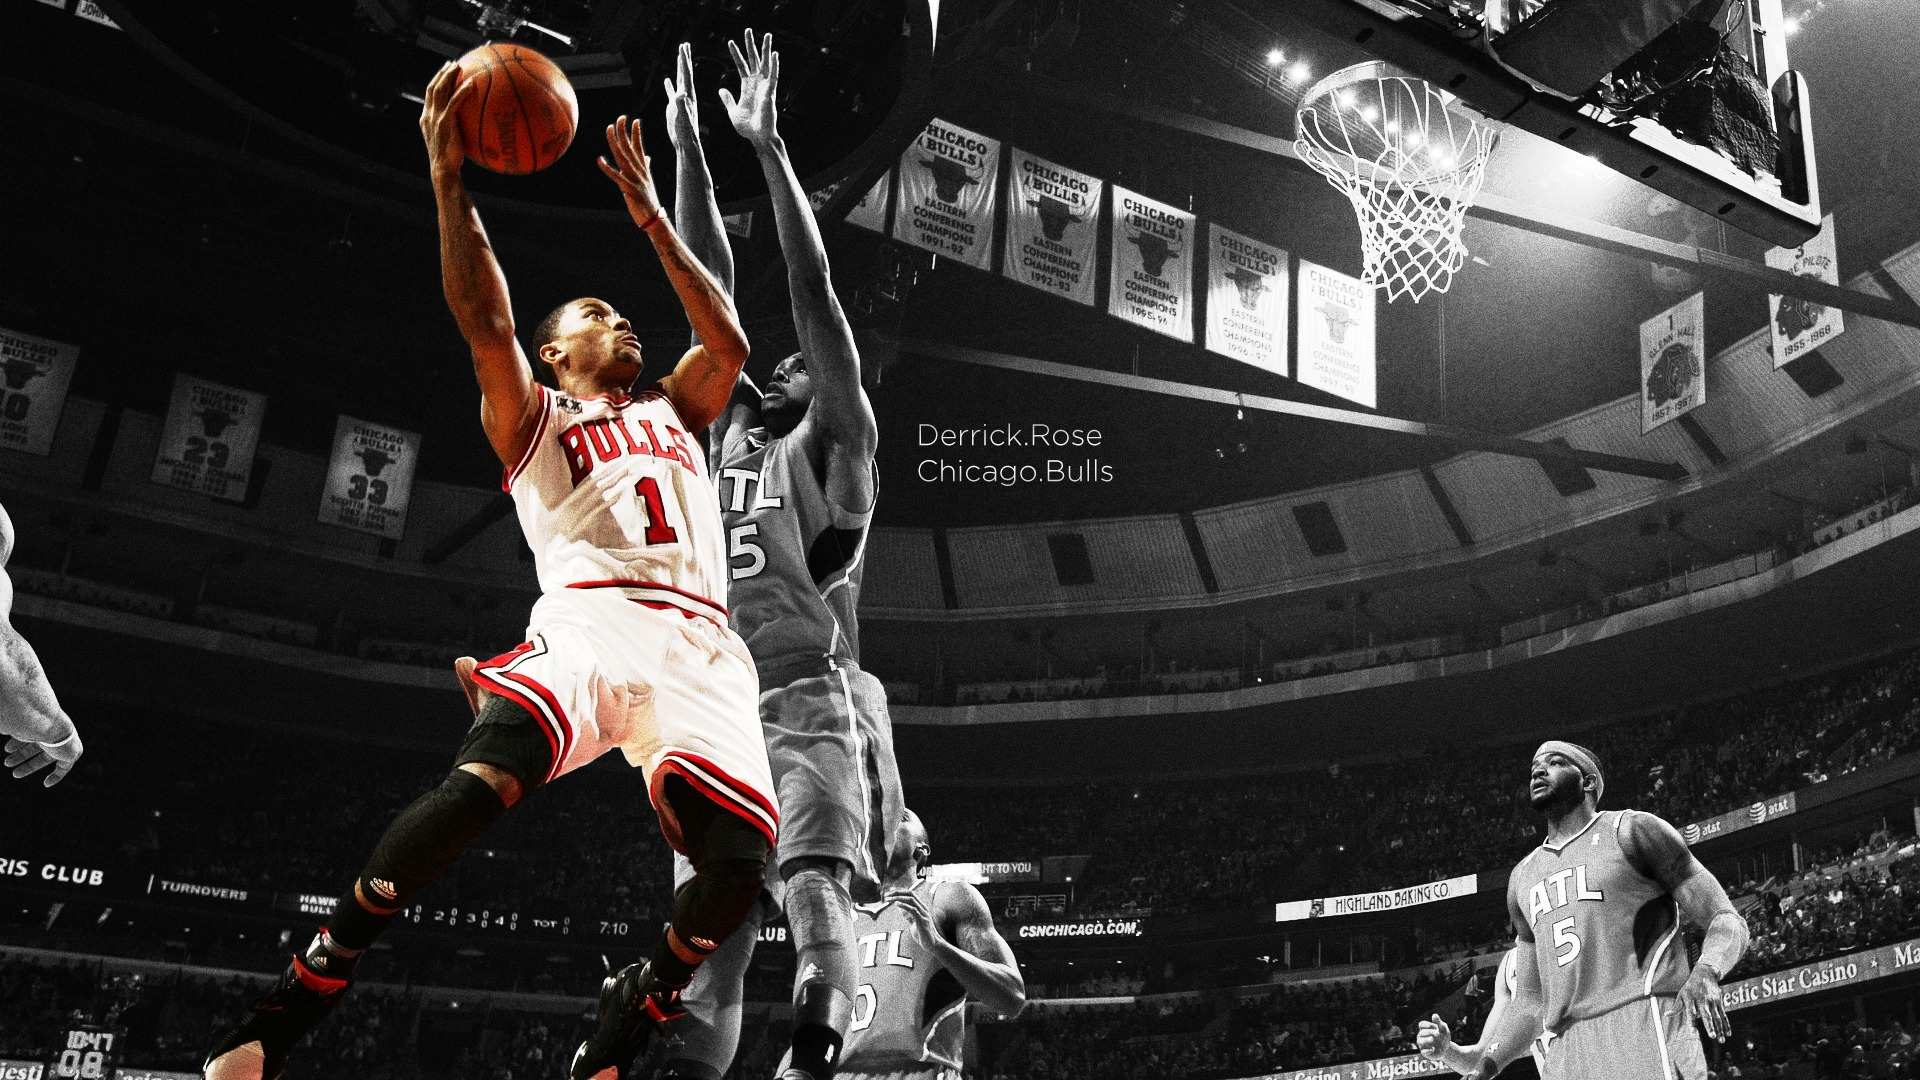 Derrick Rose Chicago Bulls Wallpaper 1920x1080